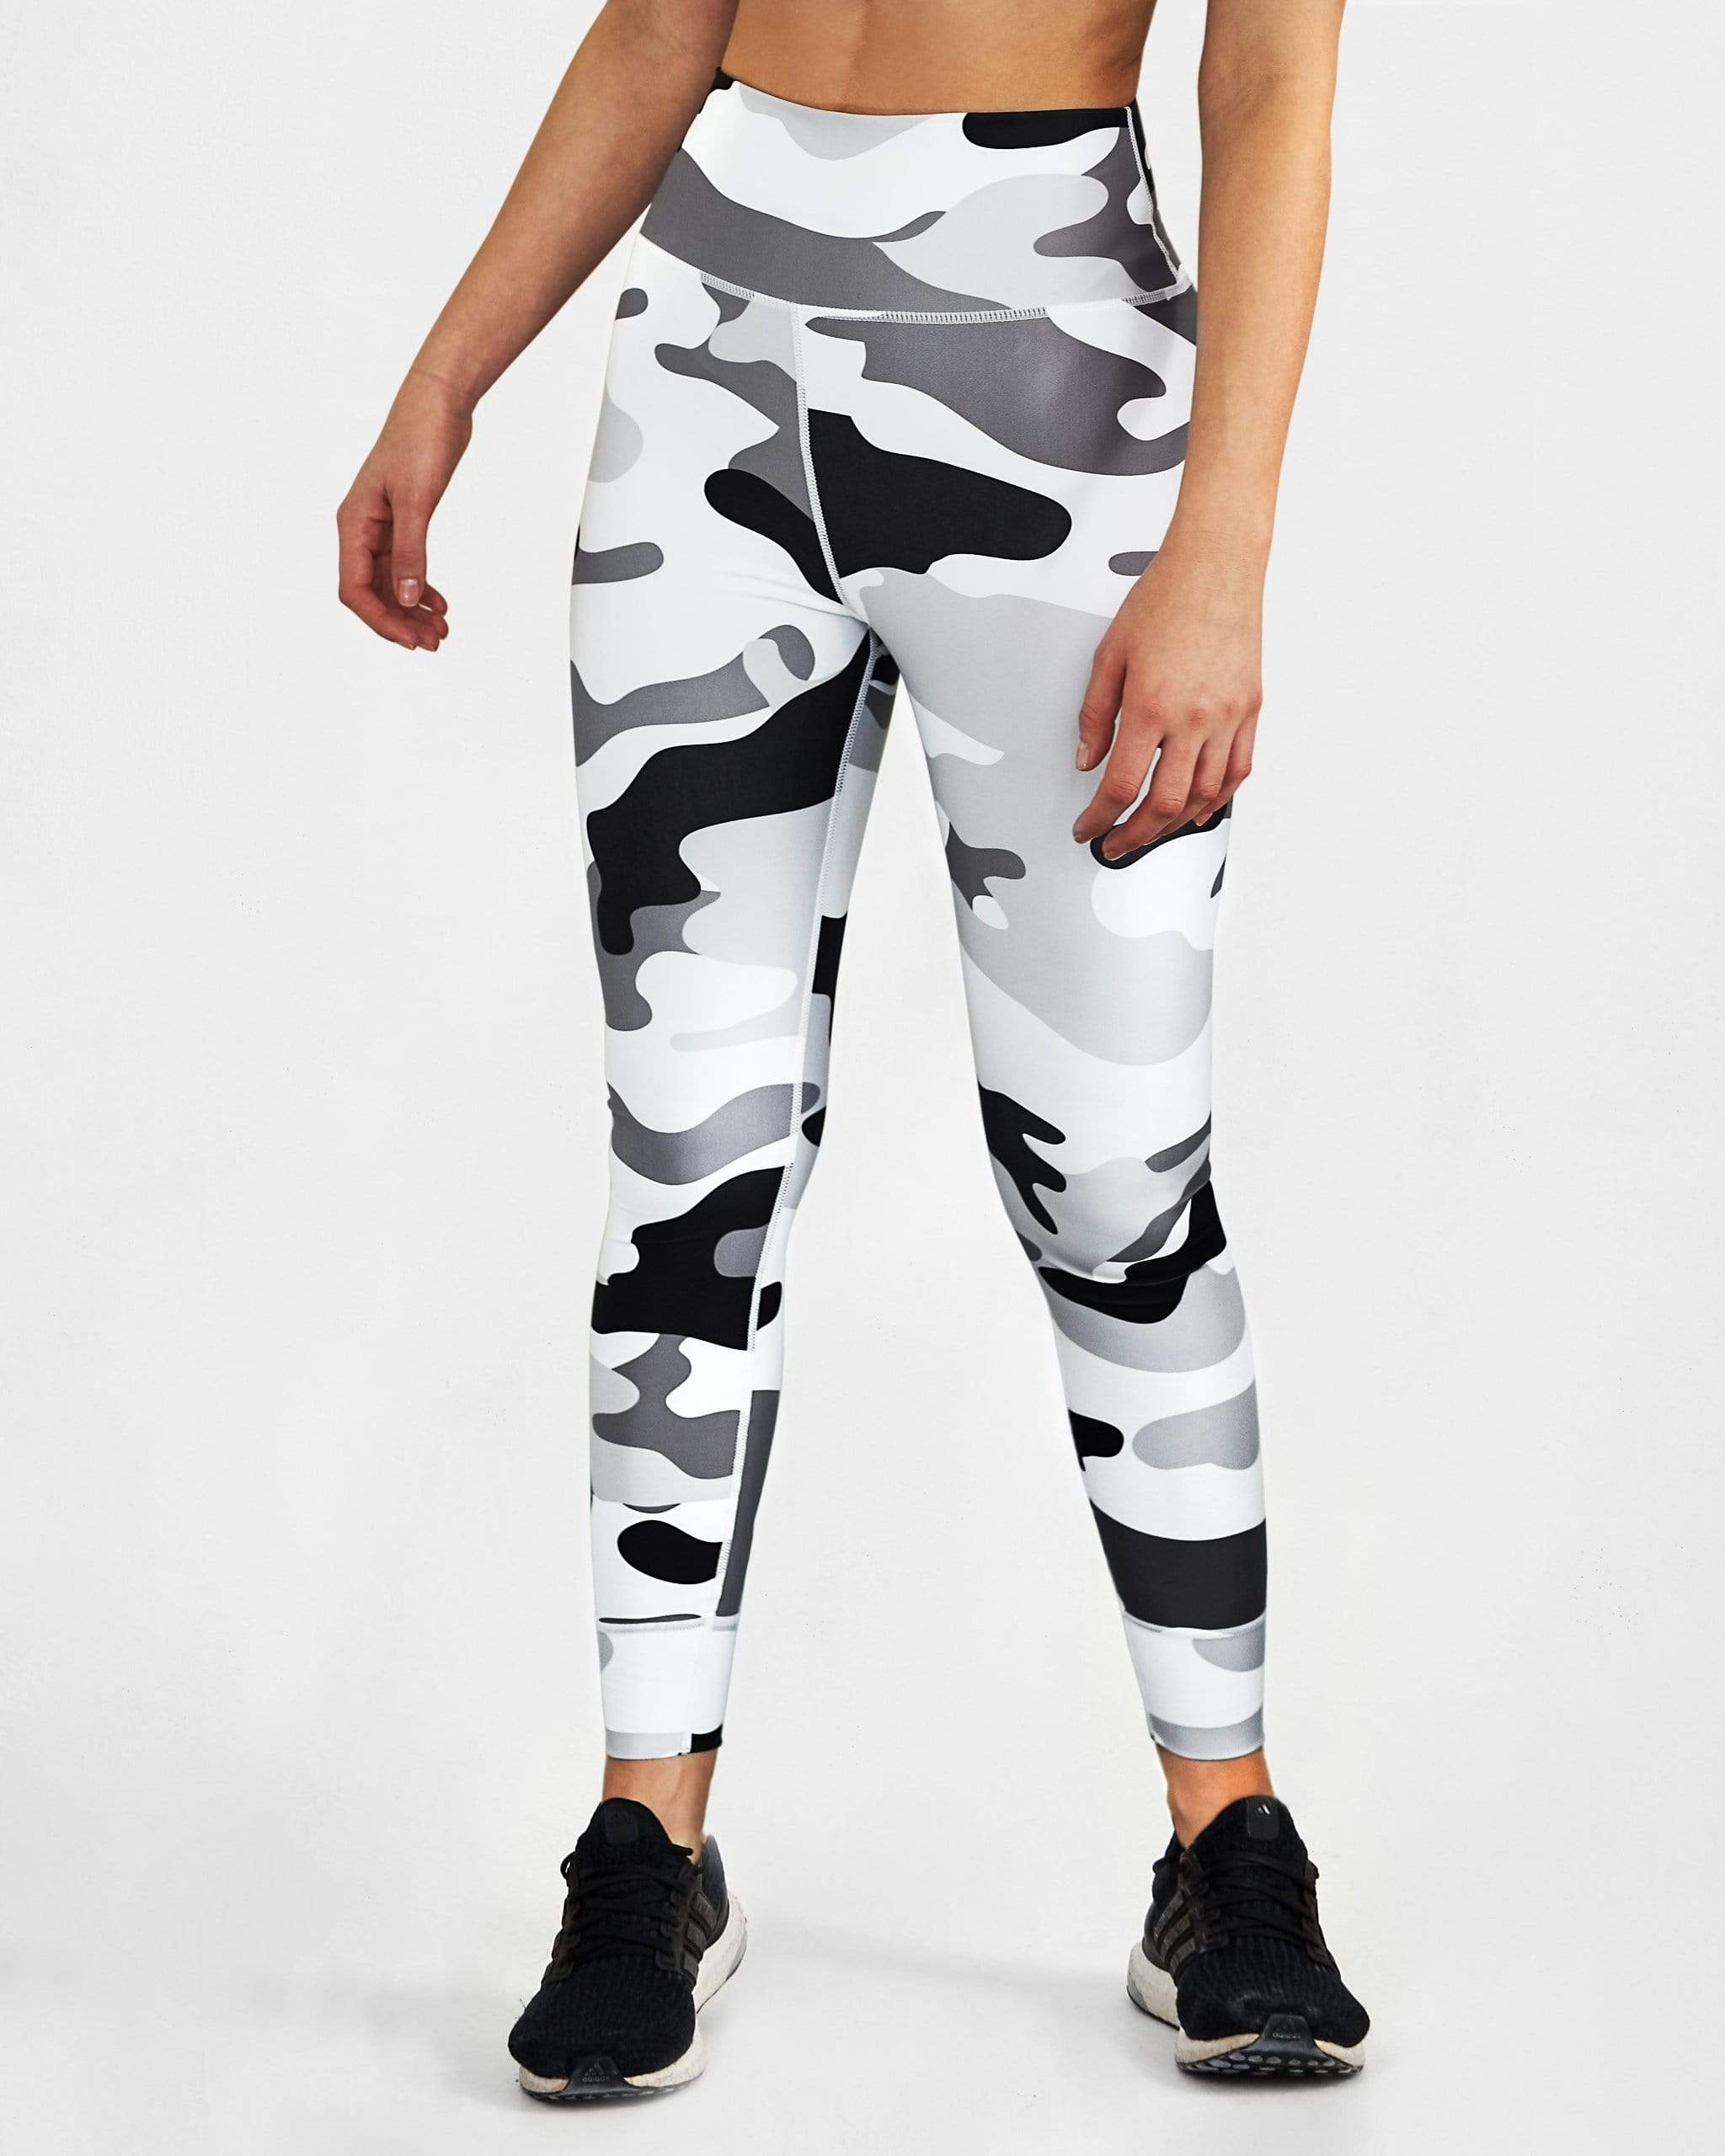 Urban Camo Leggings - GYMVERSUS